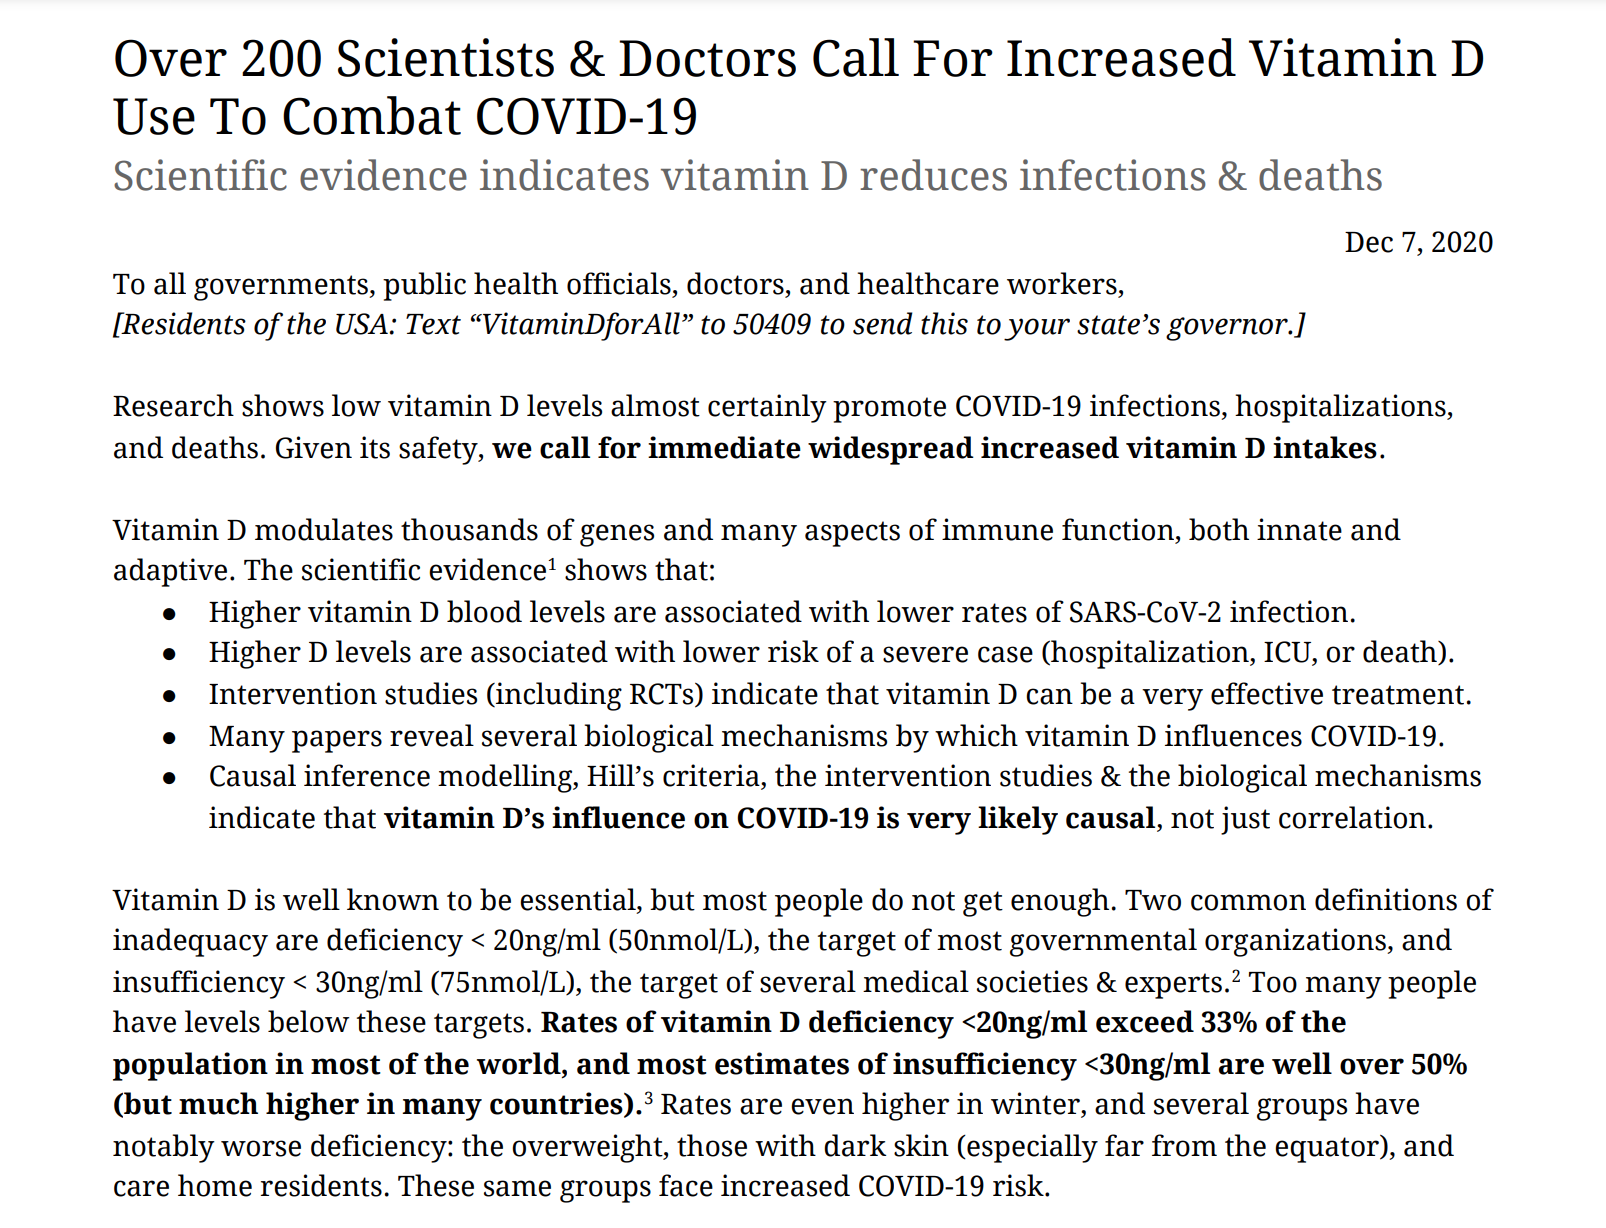 120 Medical & Science Experts Call for Vitamin D to Fight Covid-19